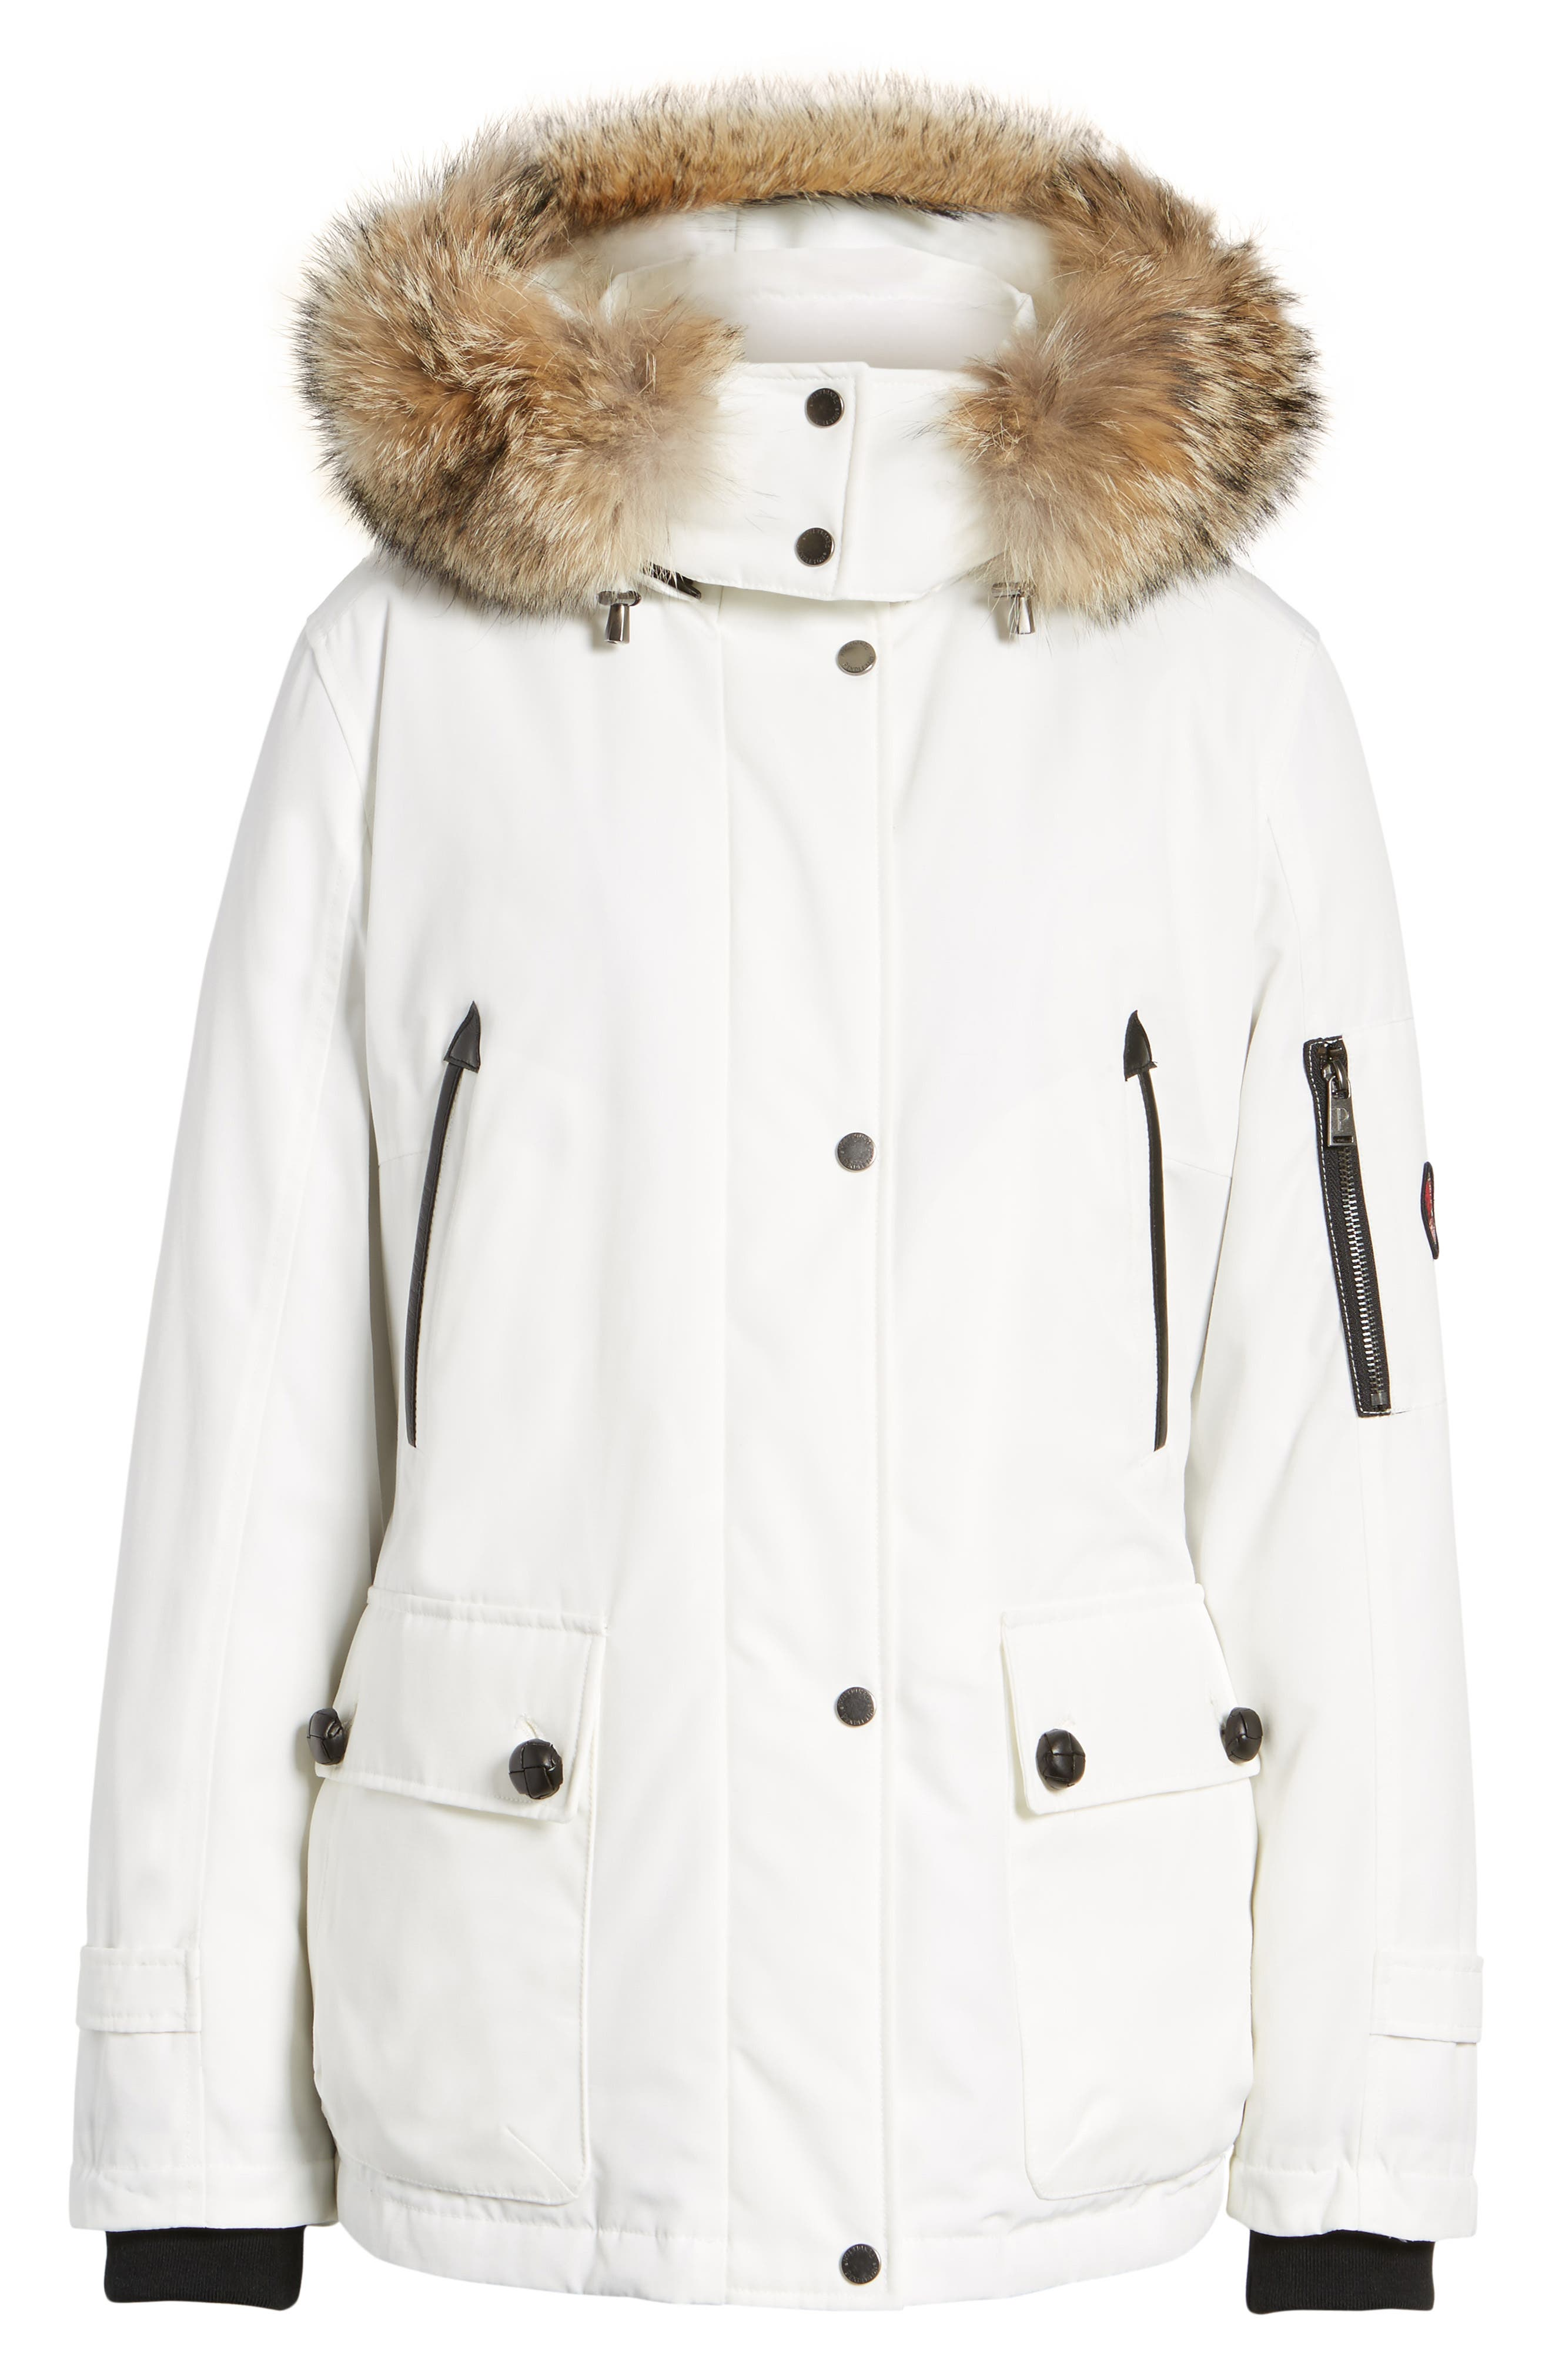 Bachelor Water Repellent Hooded Down Parka with Genuine Coyote Fur Trim,                             Alternate thumbnail 18, color,